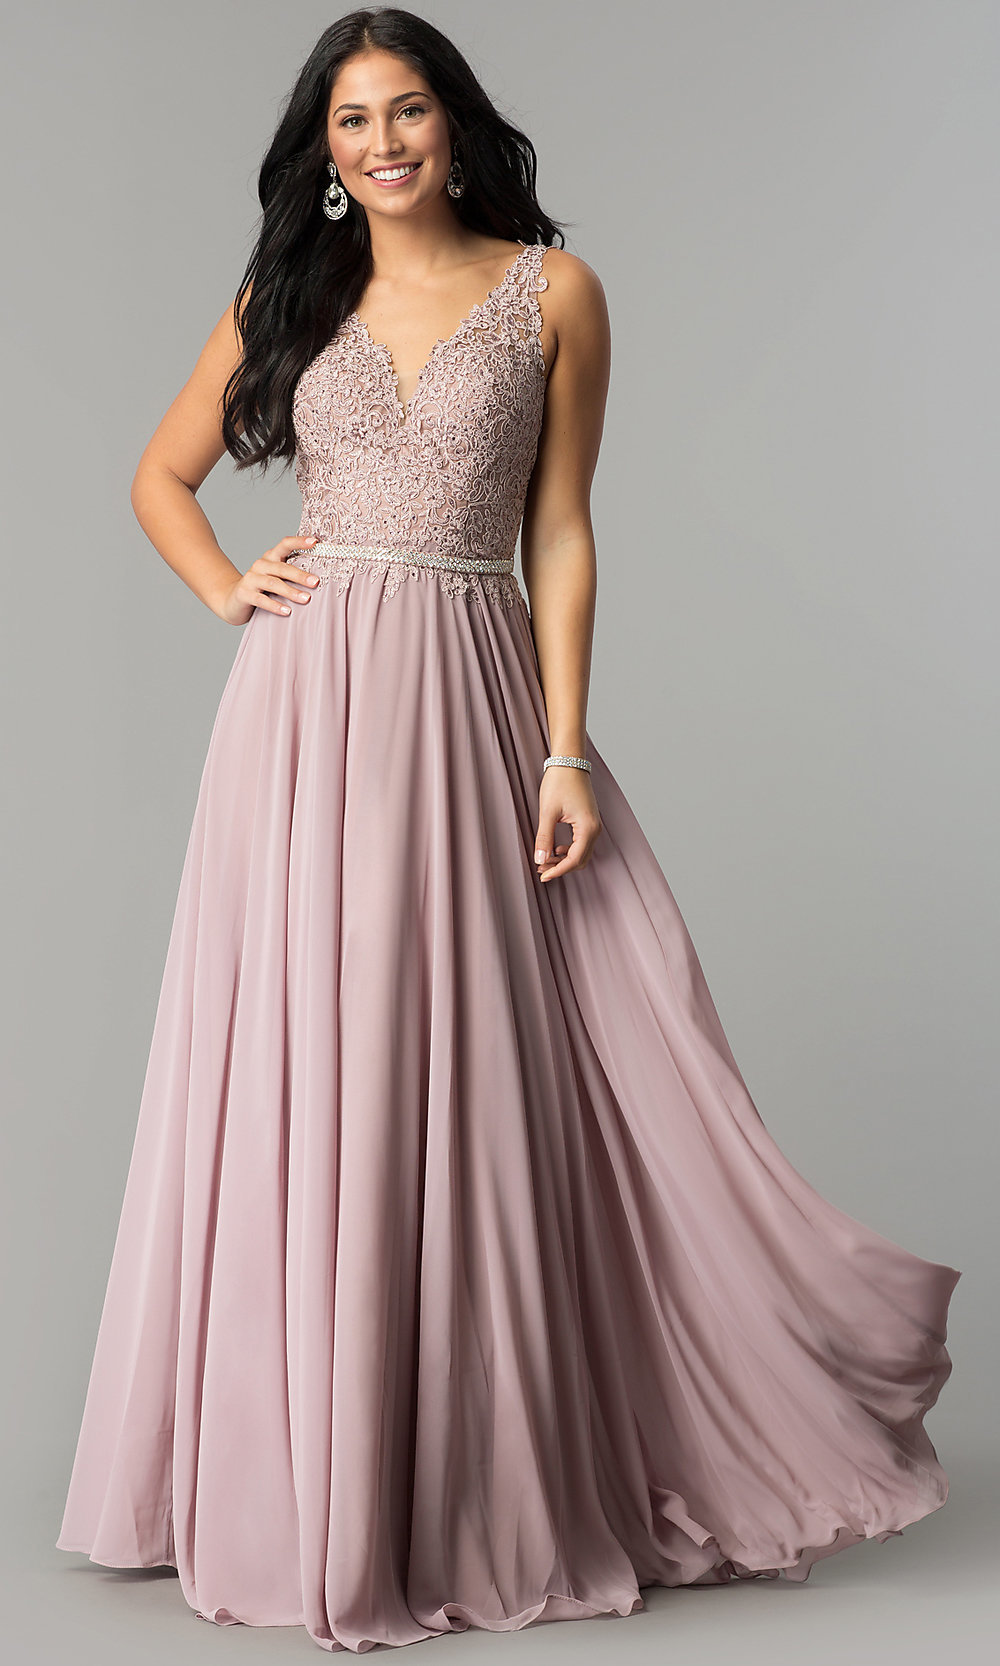 Embroidered Lace Applique Long Chiffon Prom Dress